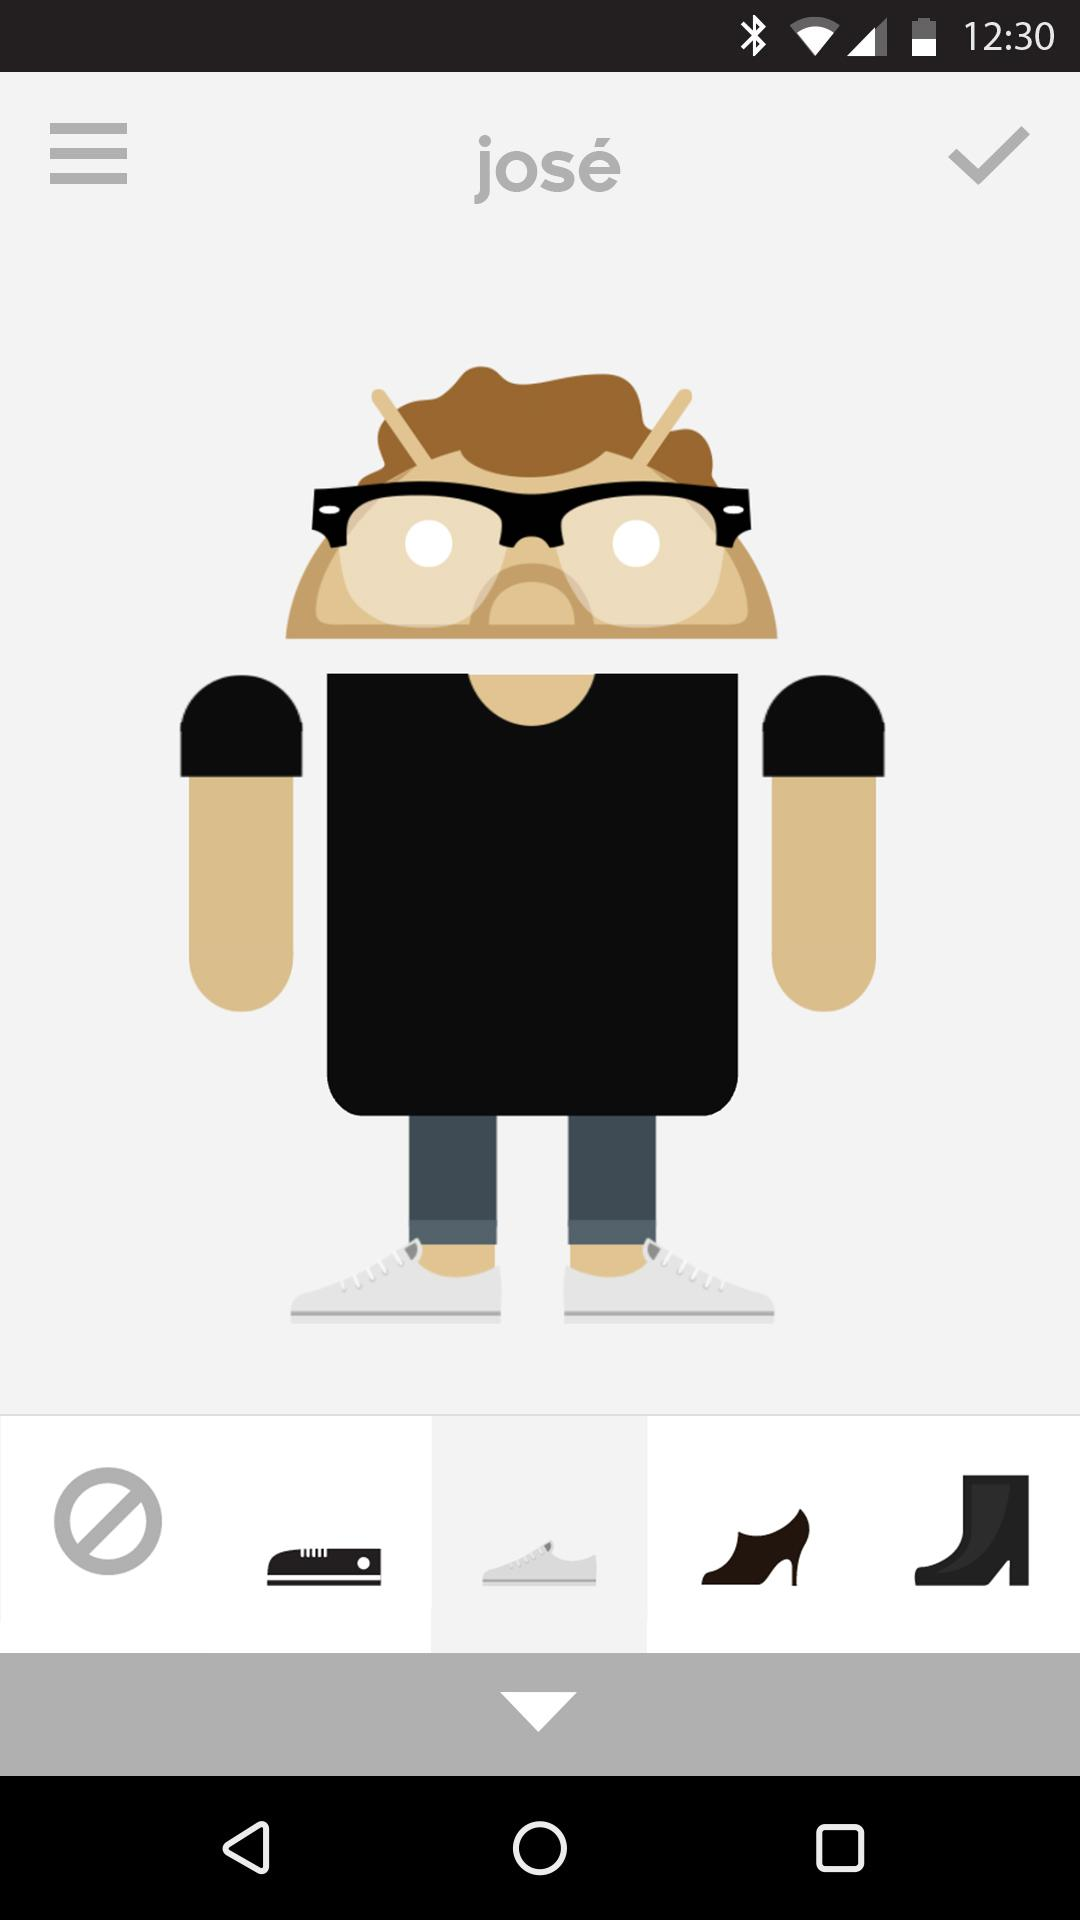 Androidify screenshot #2